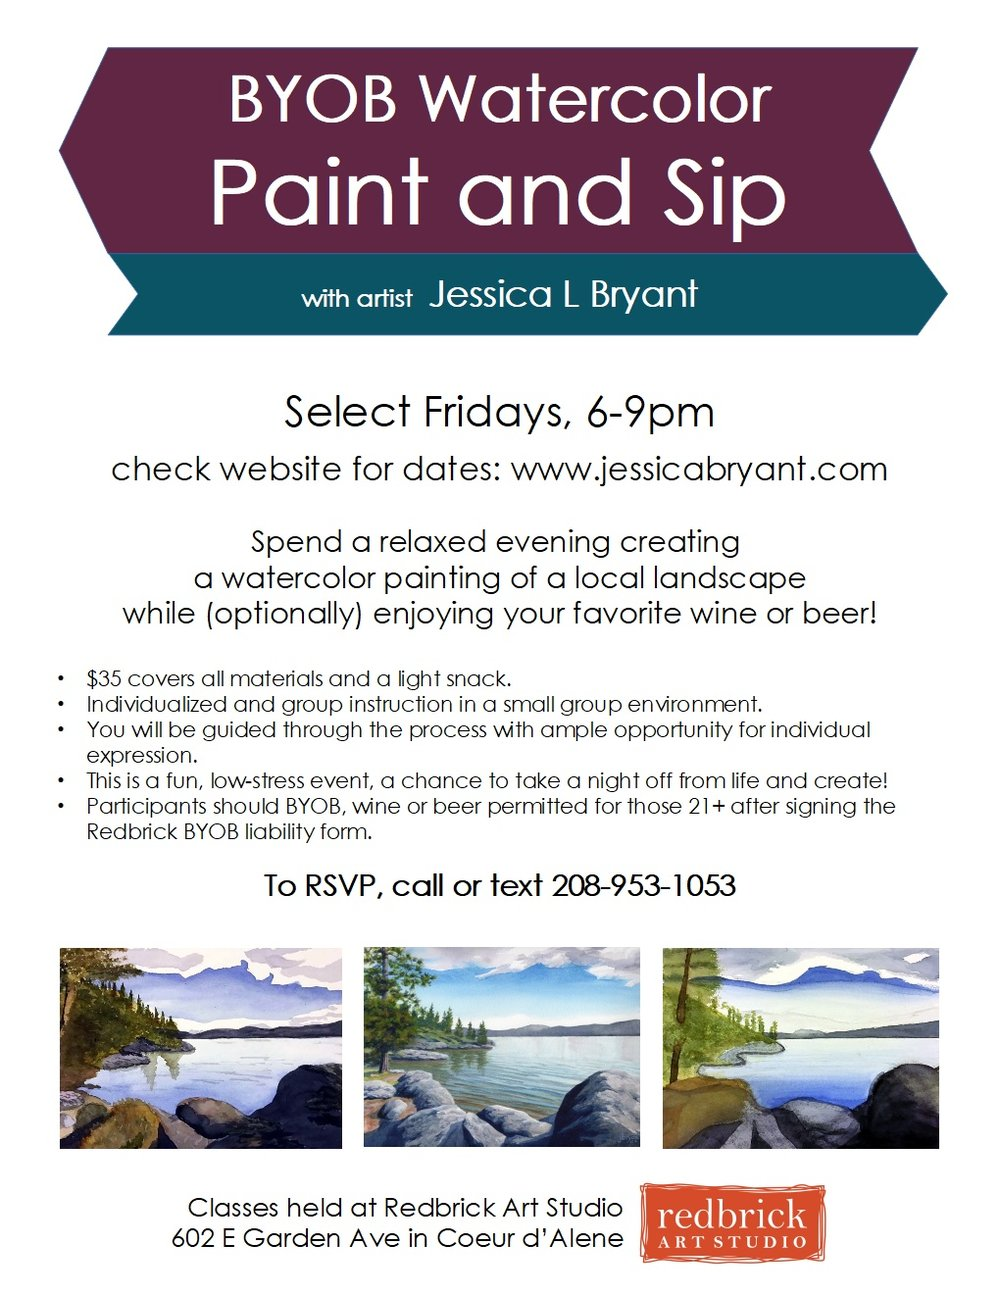 Paint and Sip with Jessica